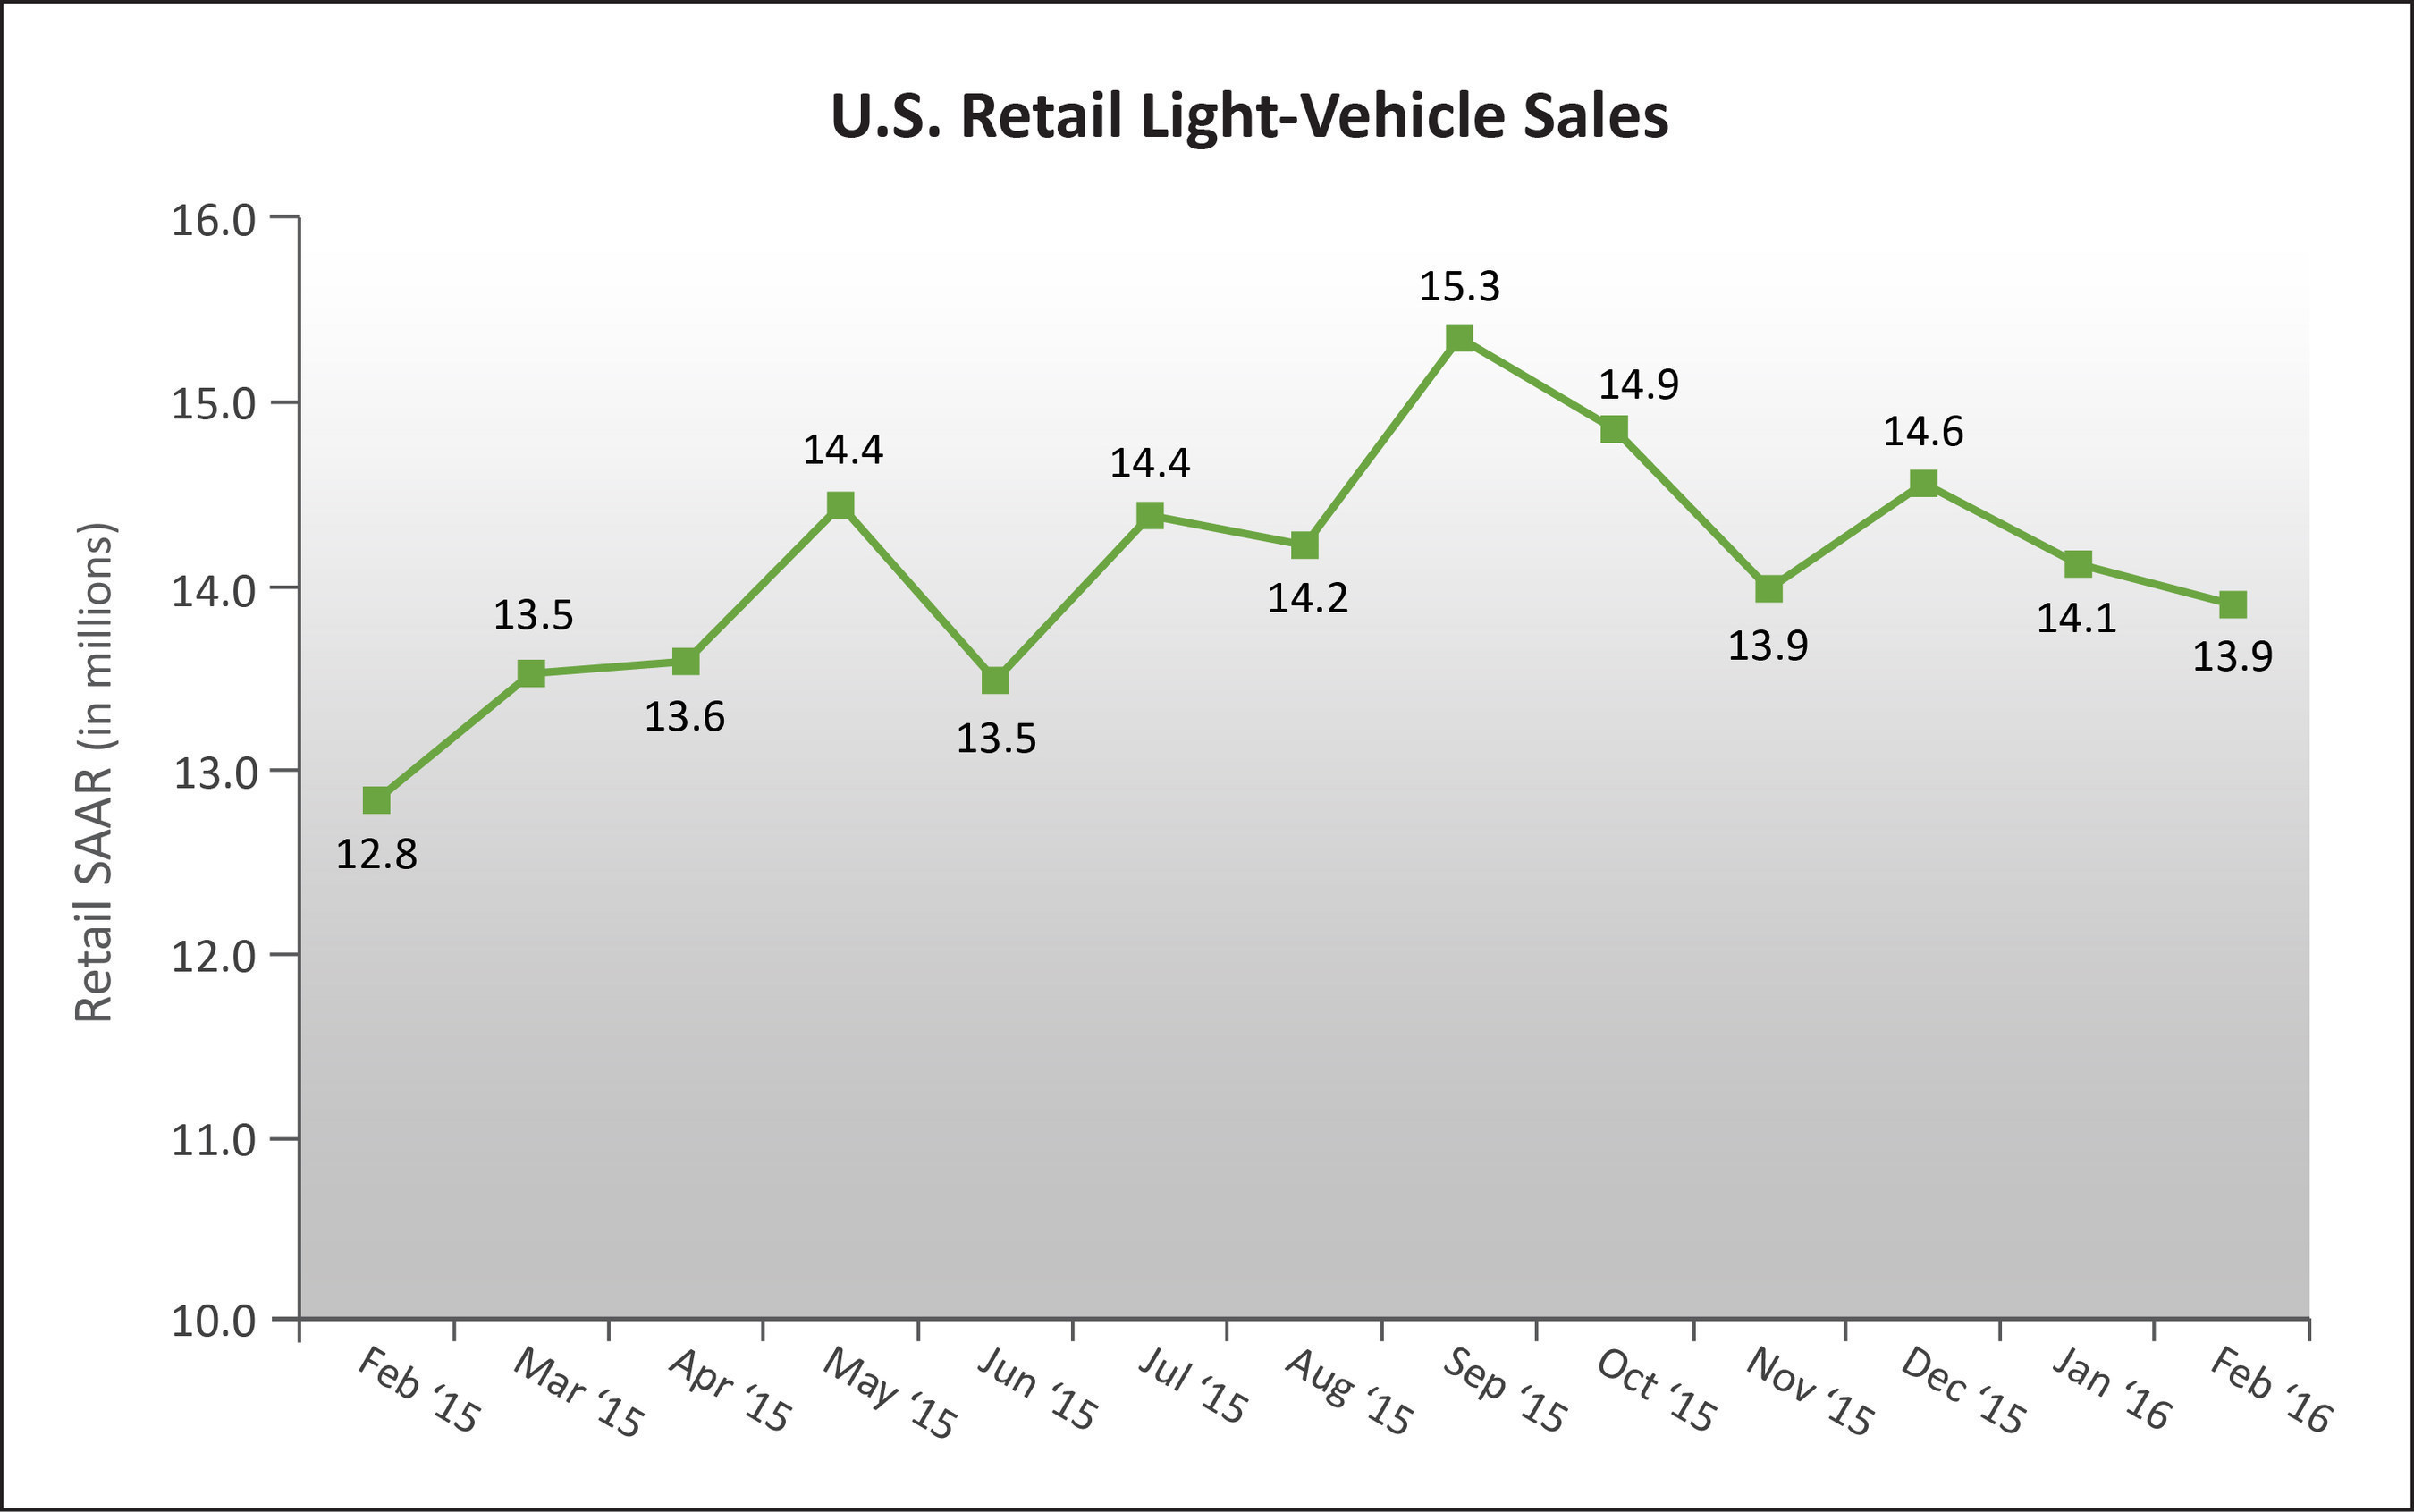 U.S. Retail SAAR--February 2015 to February 2016 (in millions of units). Source: Power Information Network (PIN) from J.D. Power.